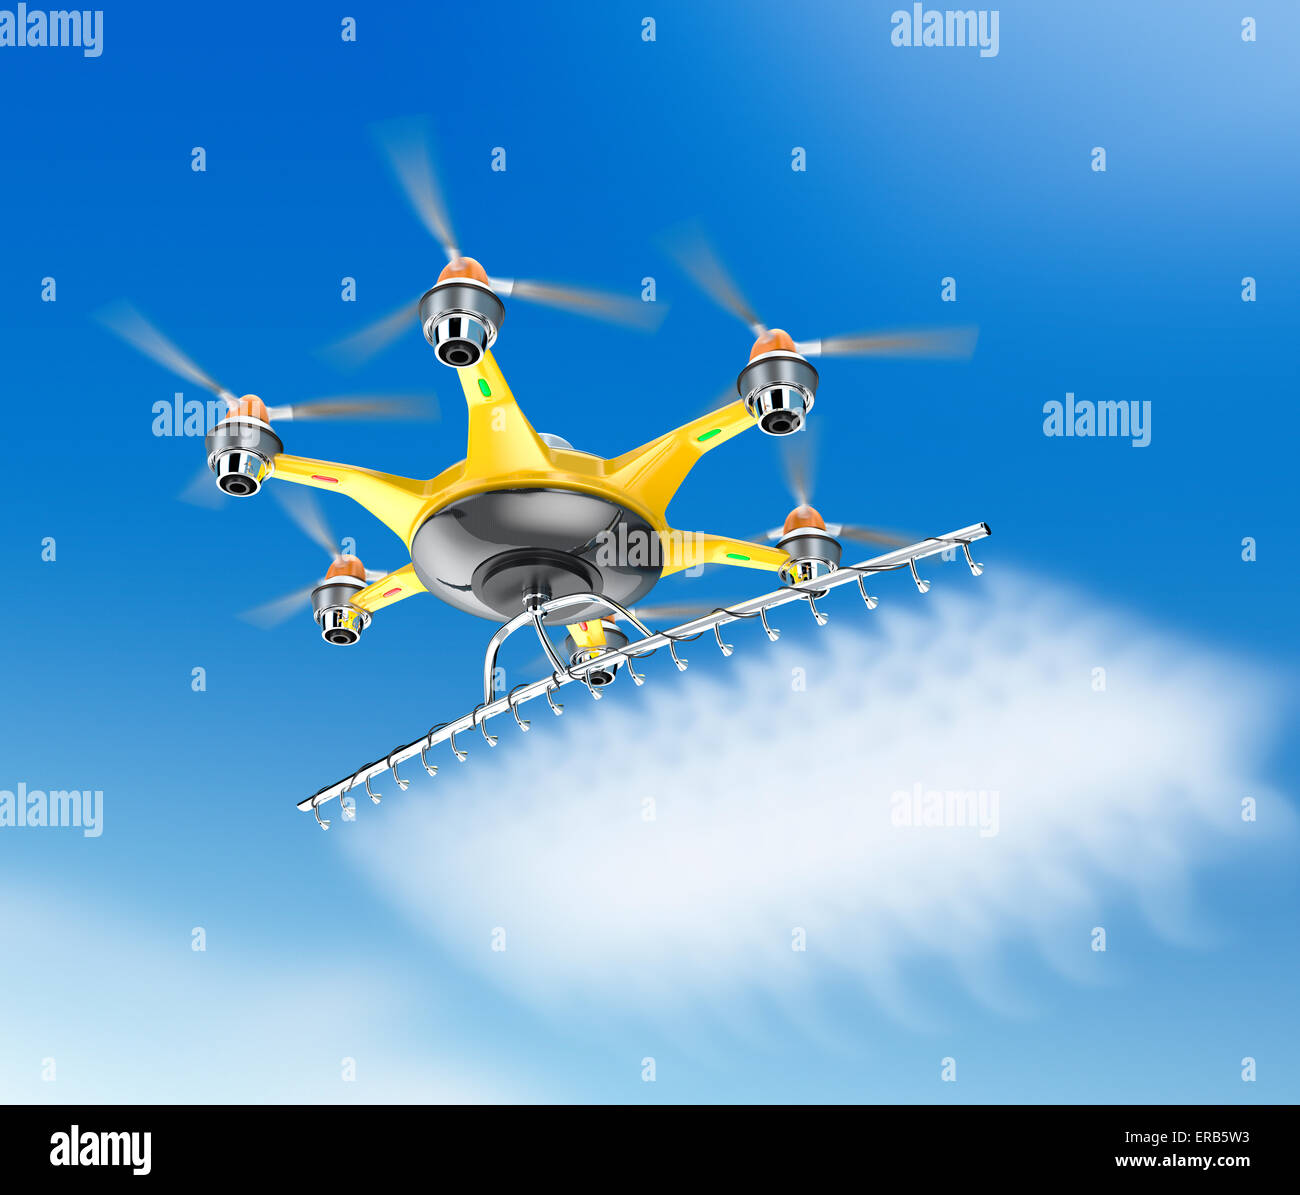 Hexacopter with crop sprayer flying in the sky - Stock Image